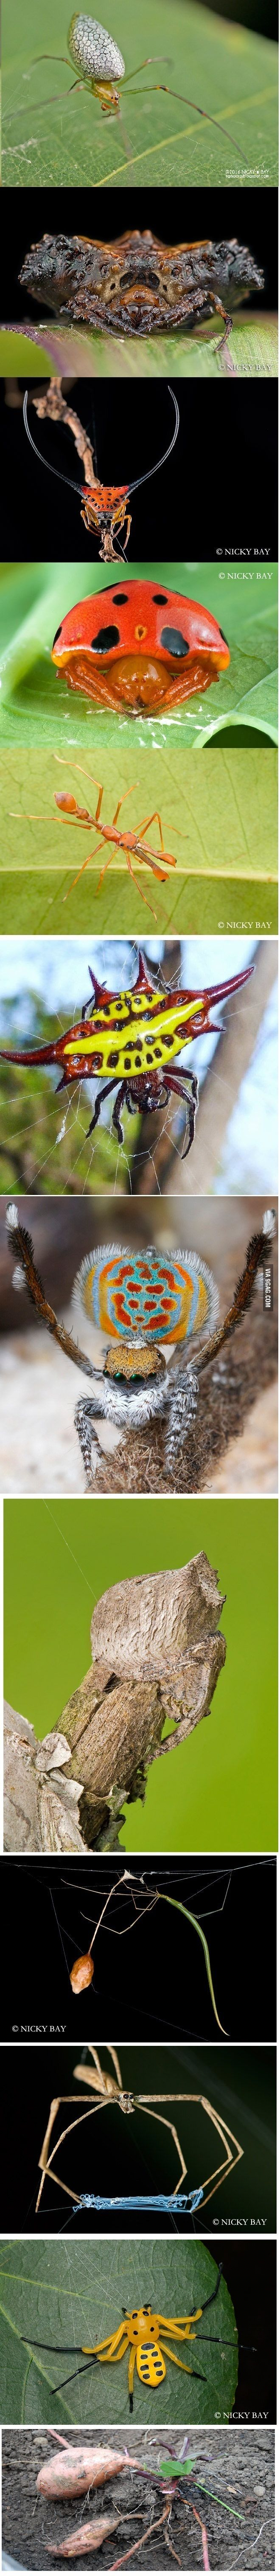 The most bizarre spiders species - 9GAG